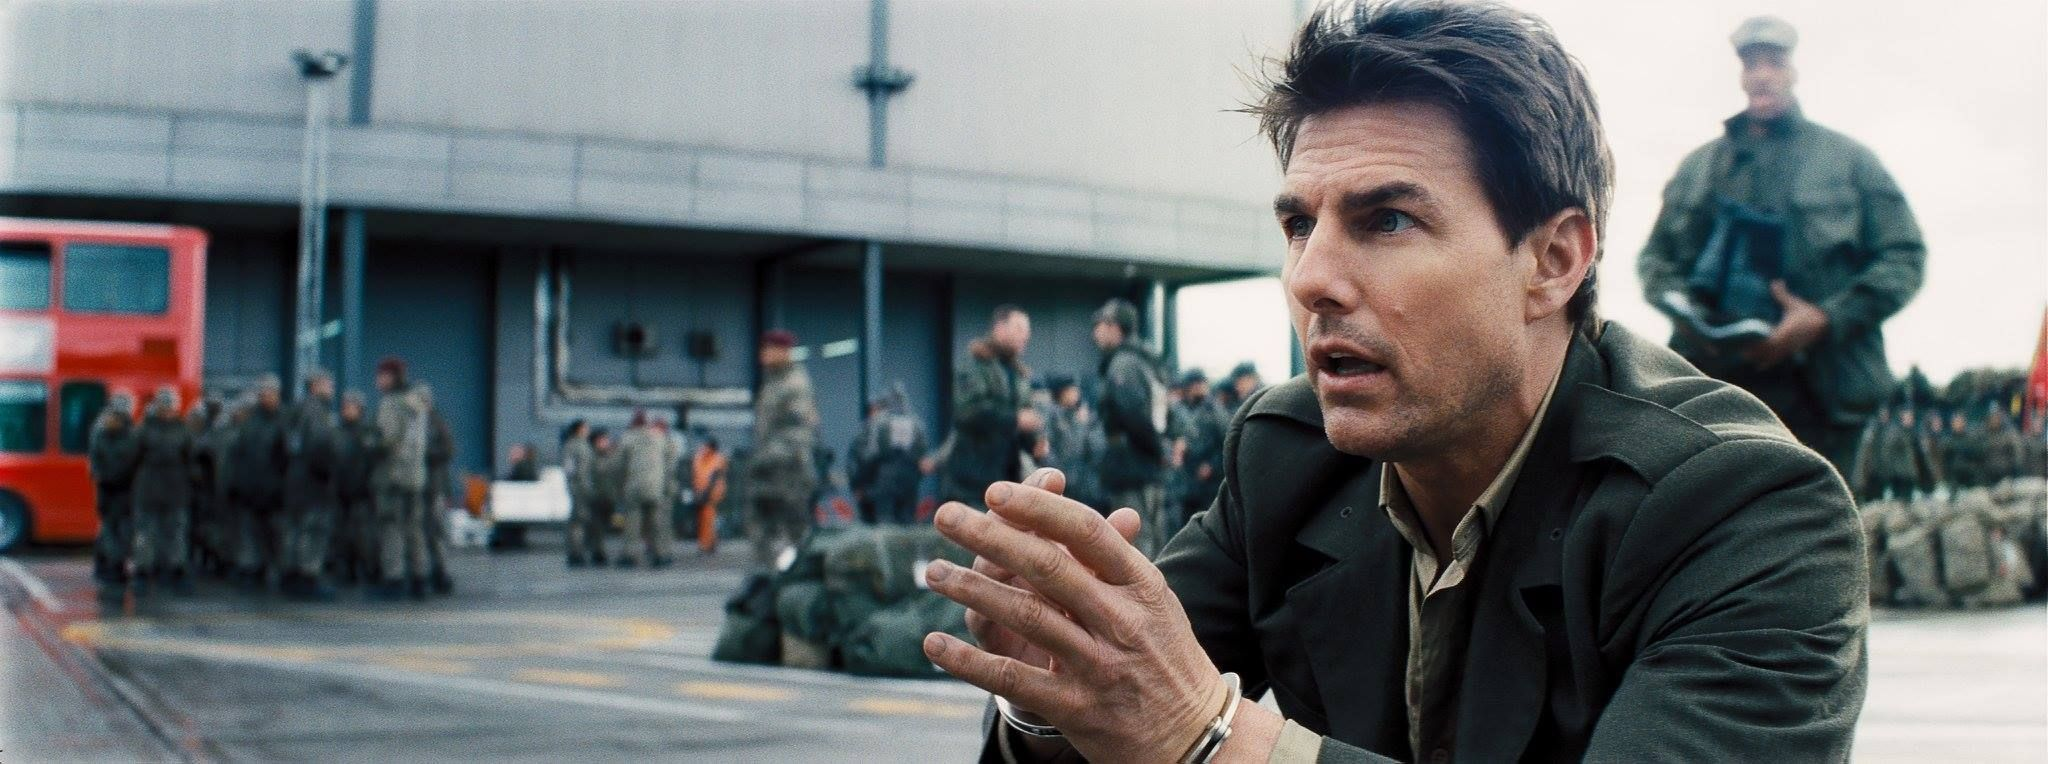 It's Judgment Day in Edge of Tomorrow